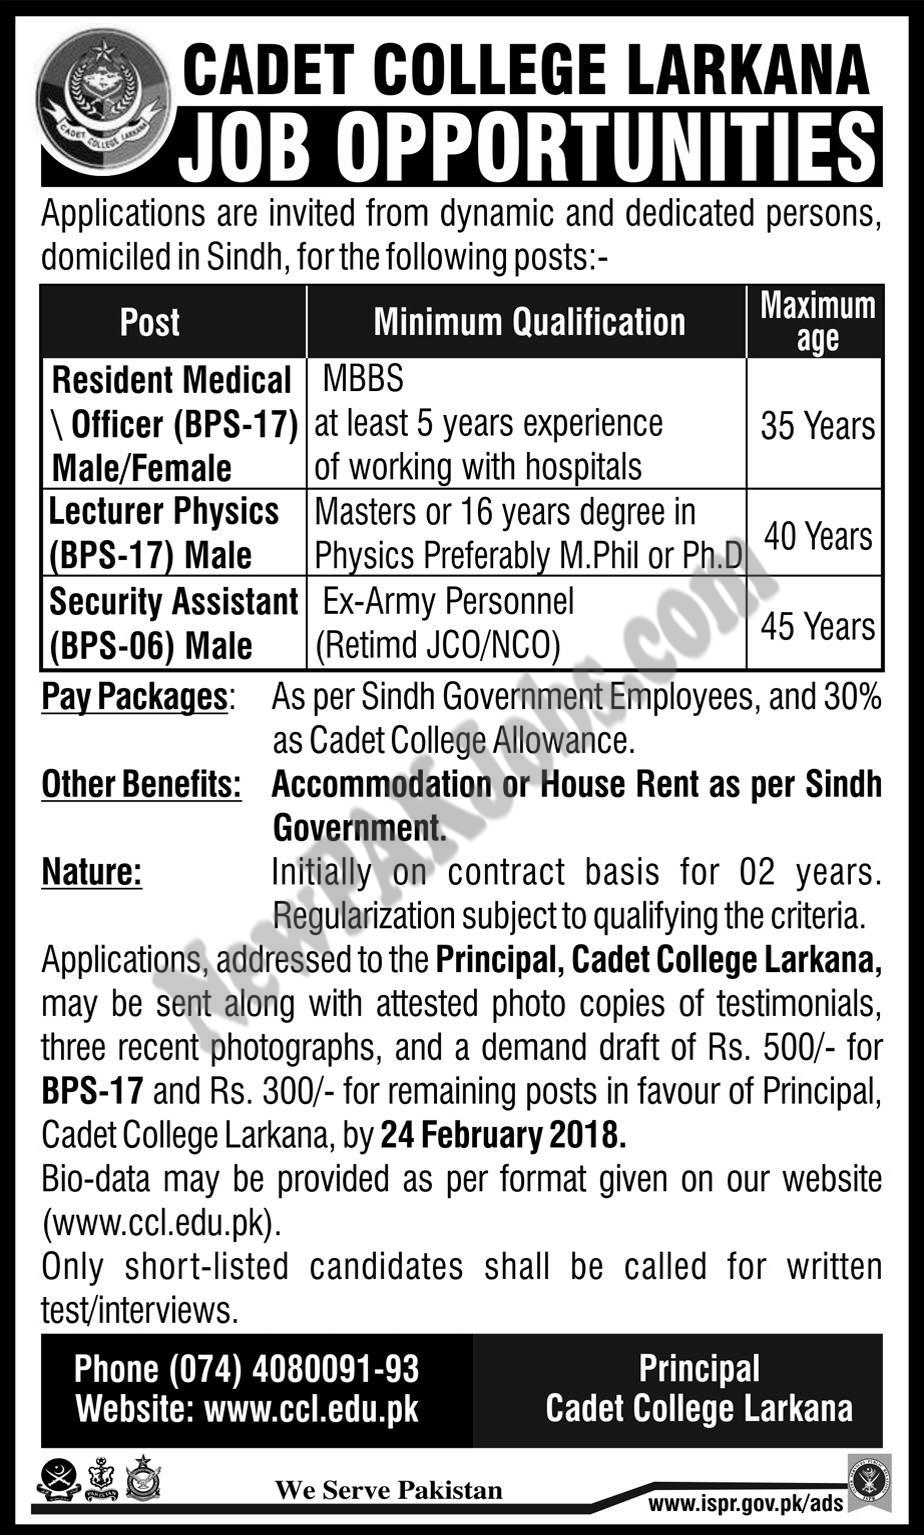 Cadet College Larkana Jobs Opportunities Today Feb 2018, New Vacancies